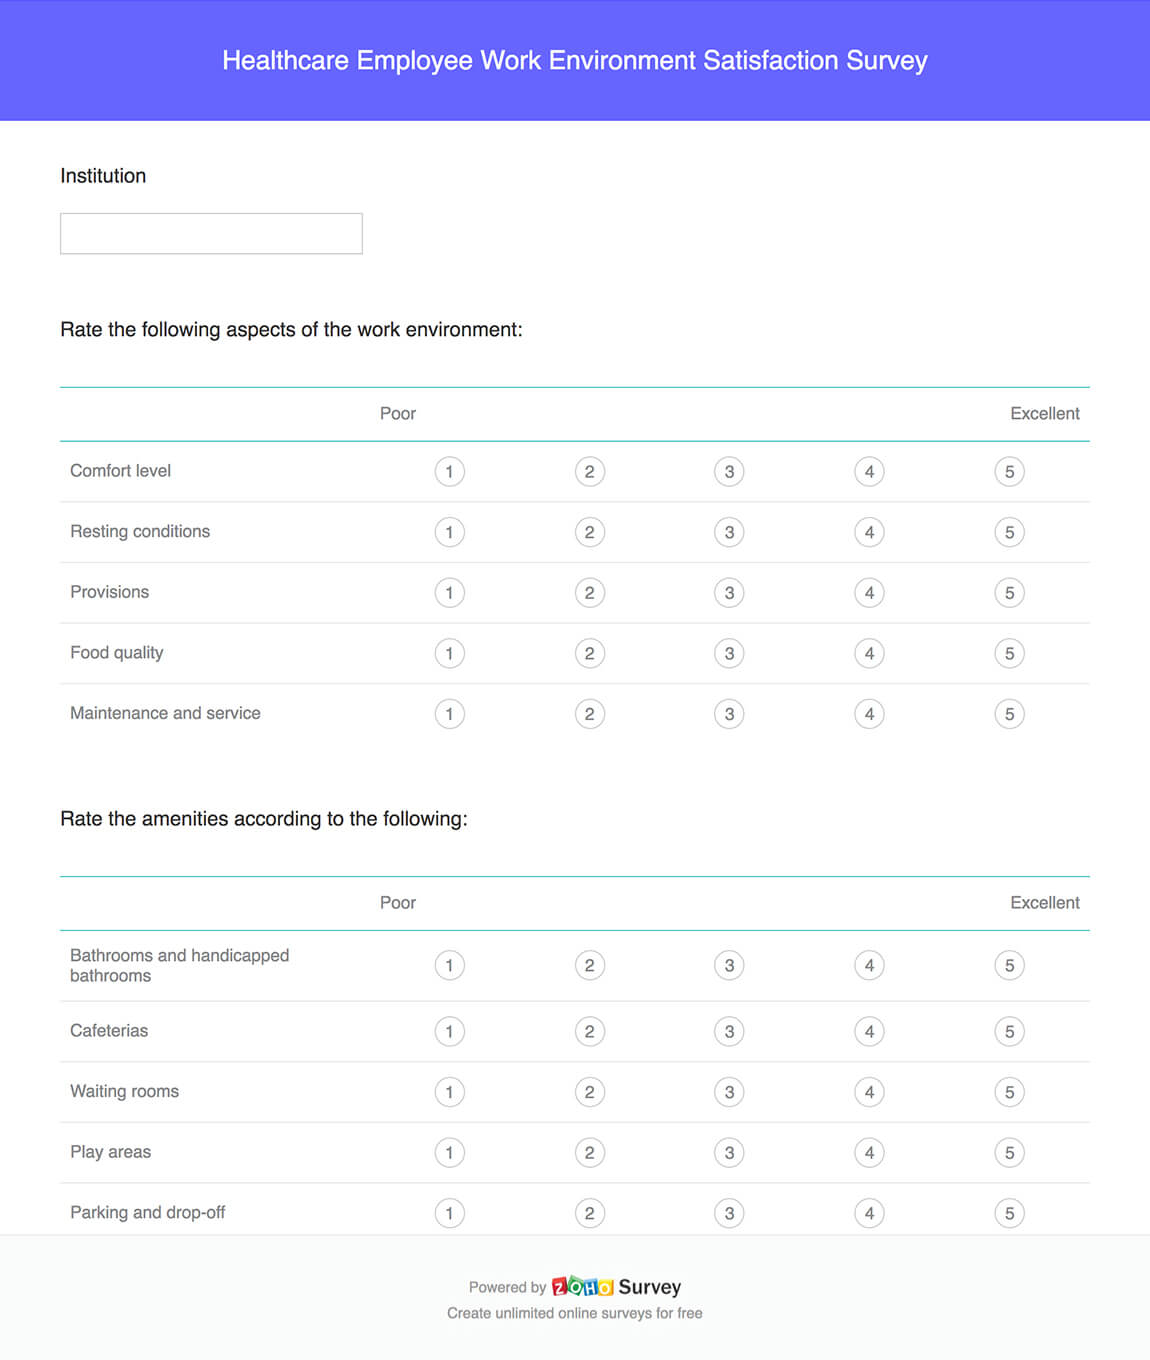 Healthcare employee work environment satisfaction survey questionnaire template